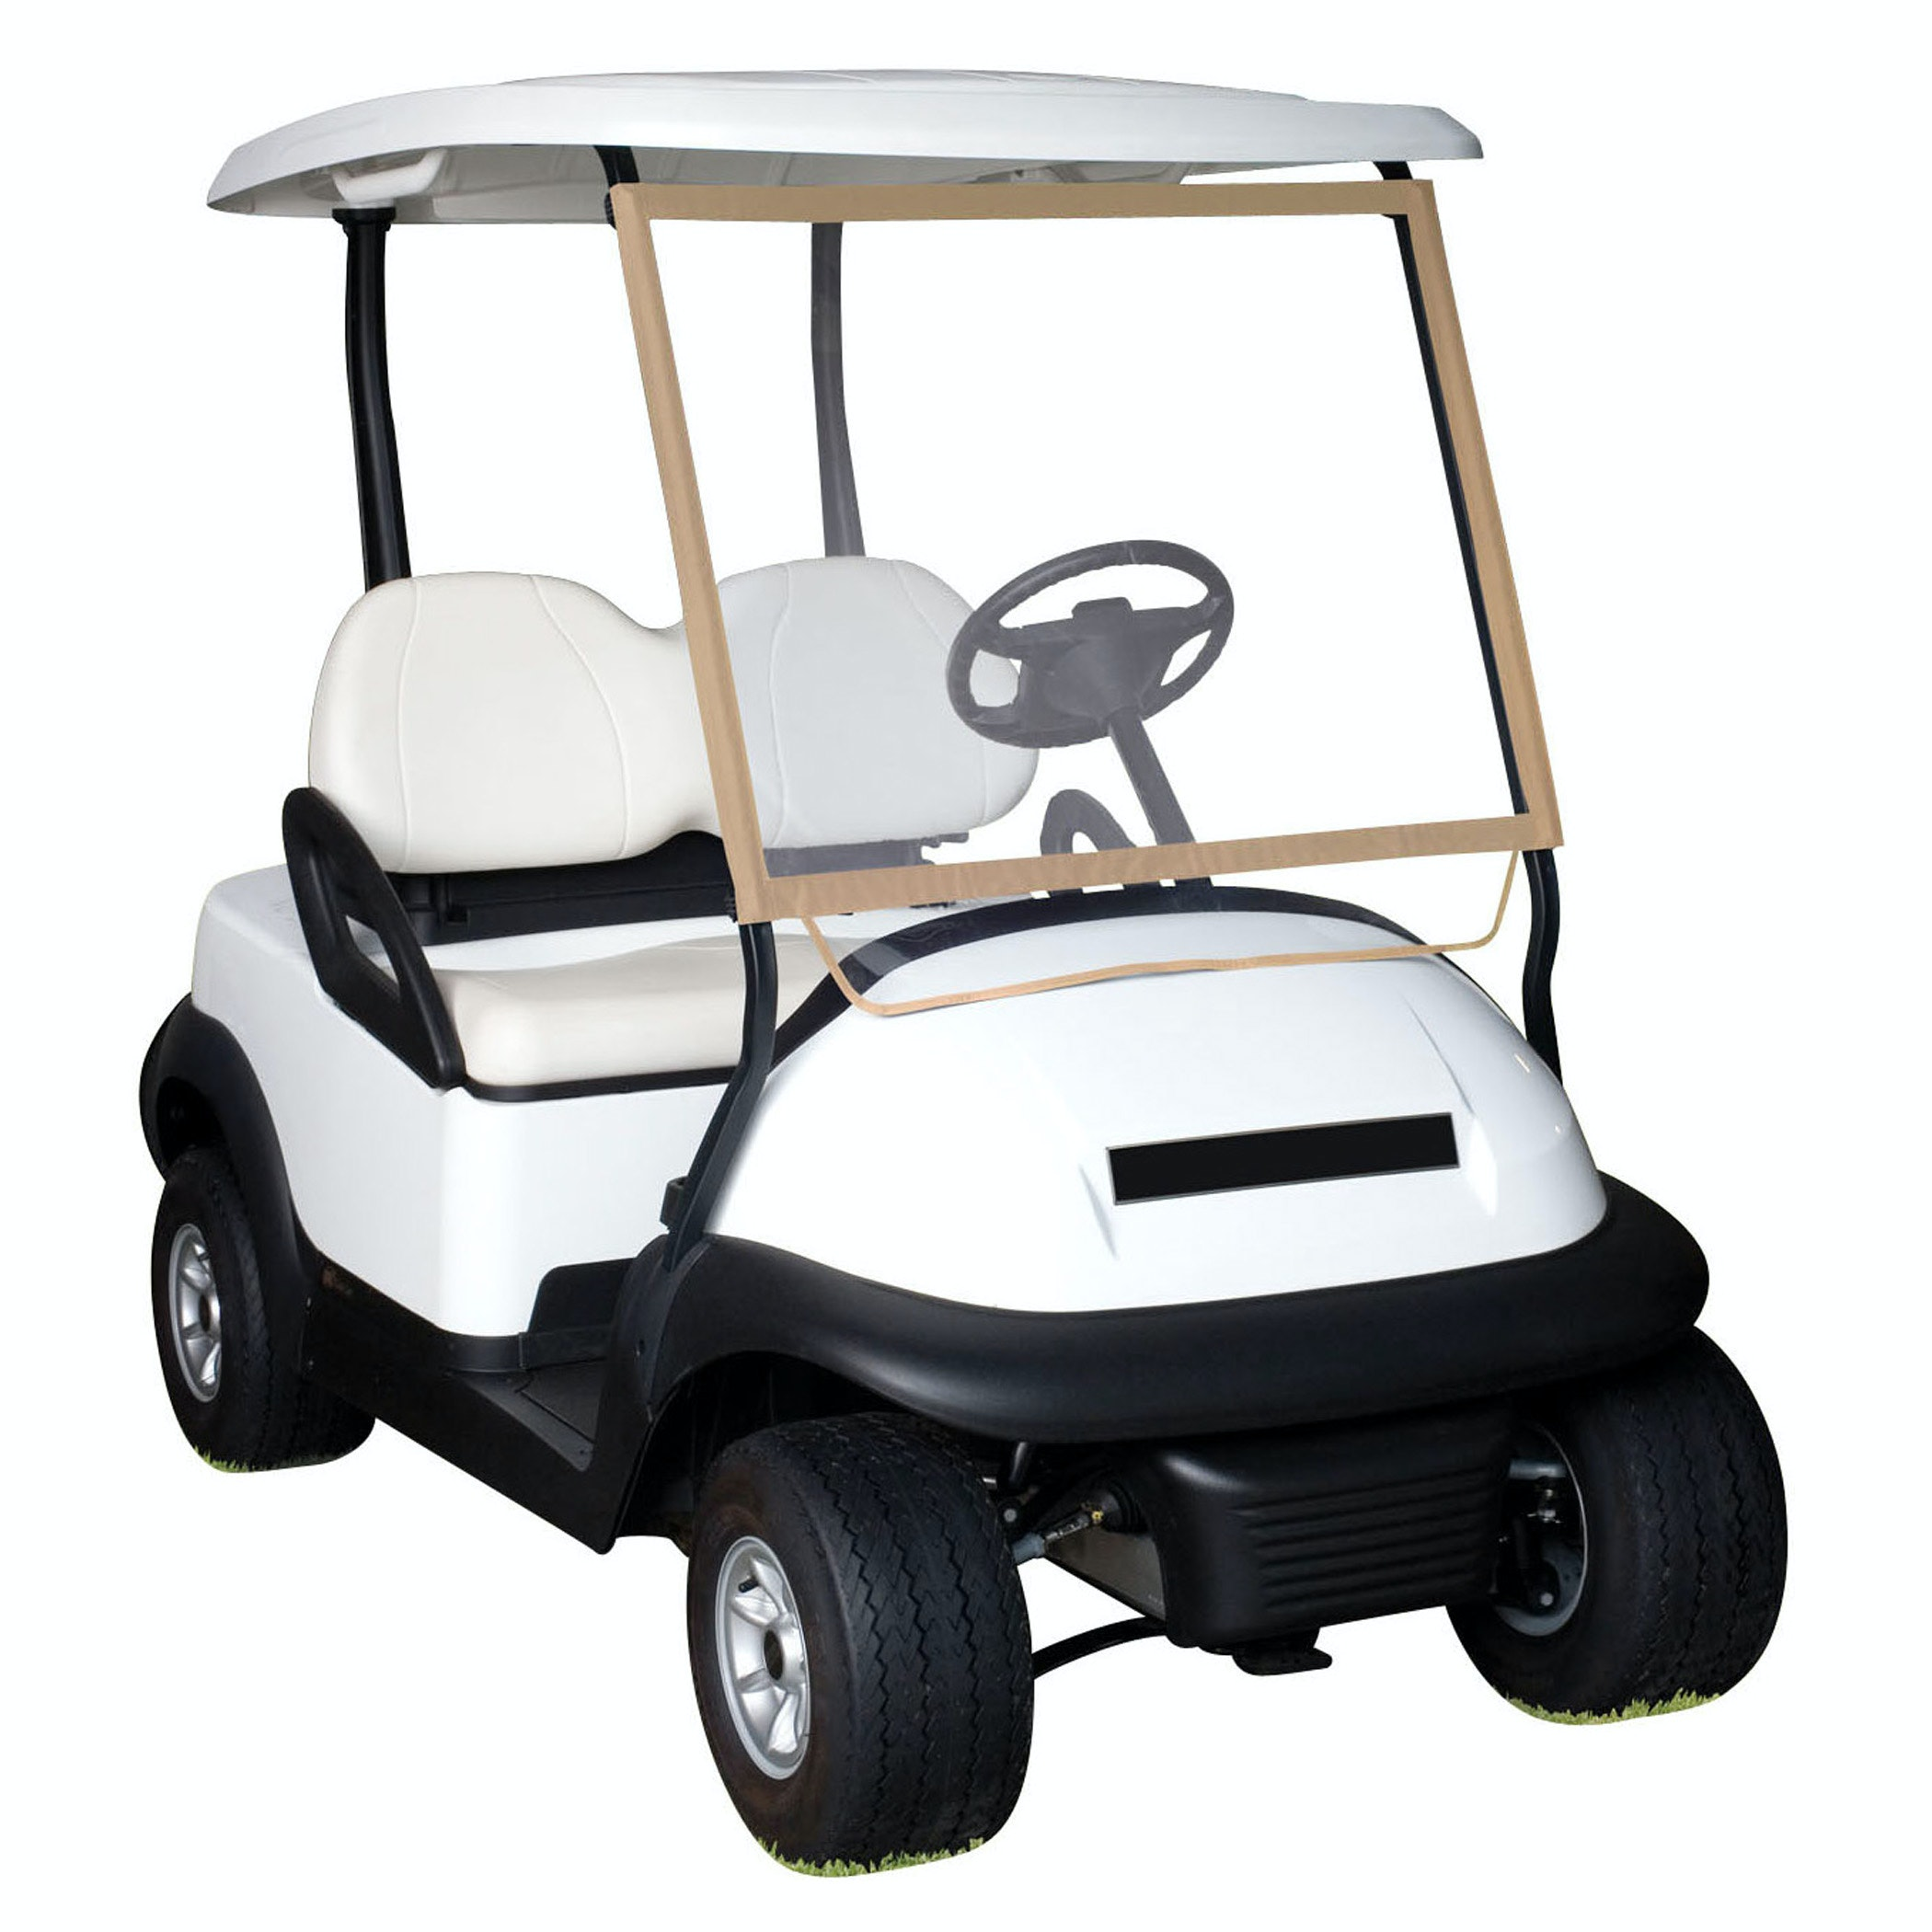 Product Image for Deluxe Portable Golf Cart Windshield